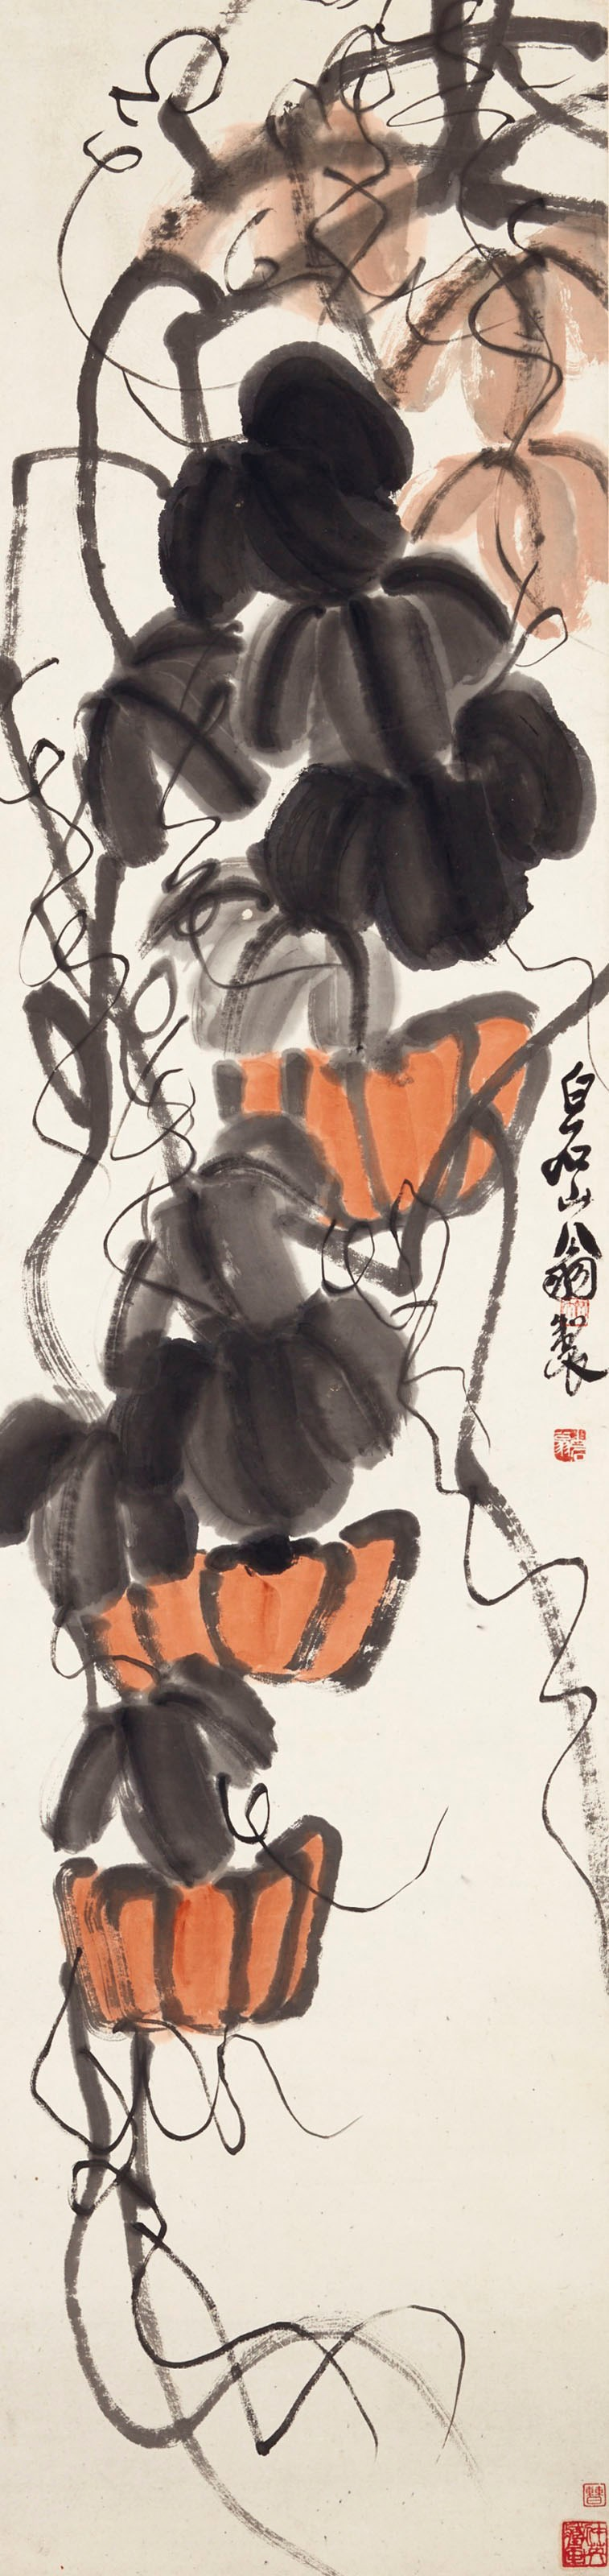 Qi Baishi (1863-1957), Pumpkins. 53⅛ x 13⅛  in (134.9 x 33.3  cm). Estimate $60,000-100,000. Offered in Fine Chinese Paintings on 11 September 2018 at Christie's in New York